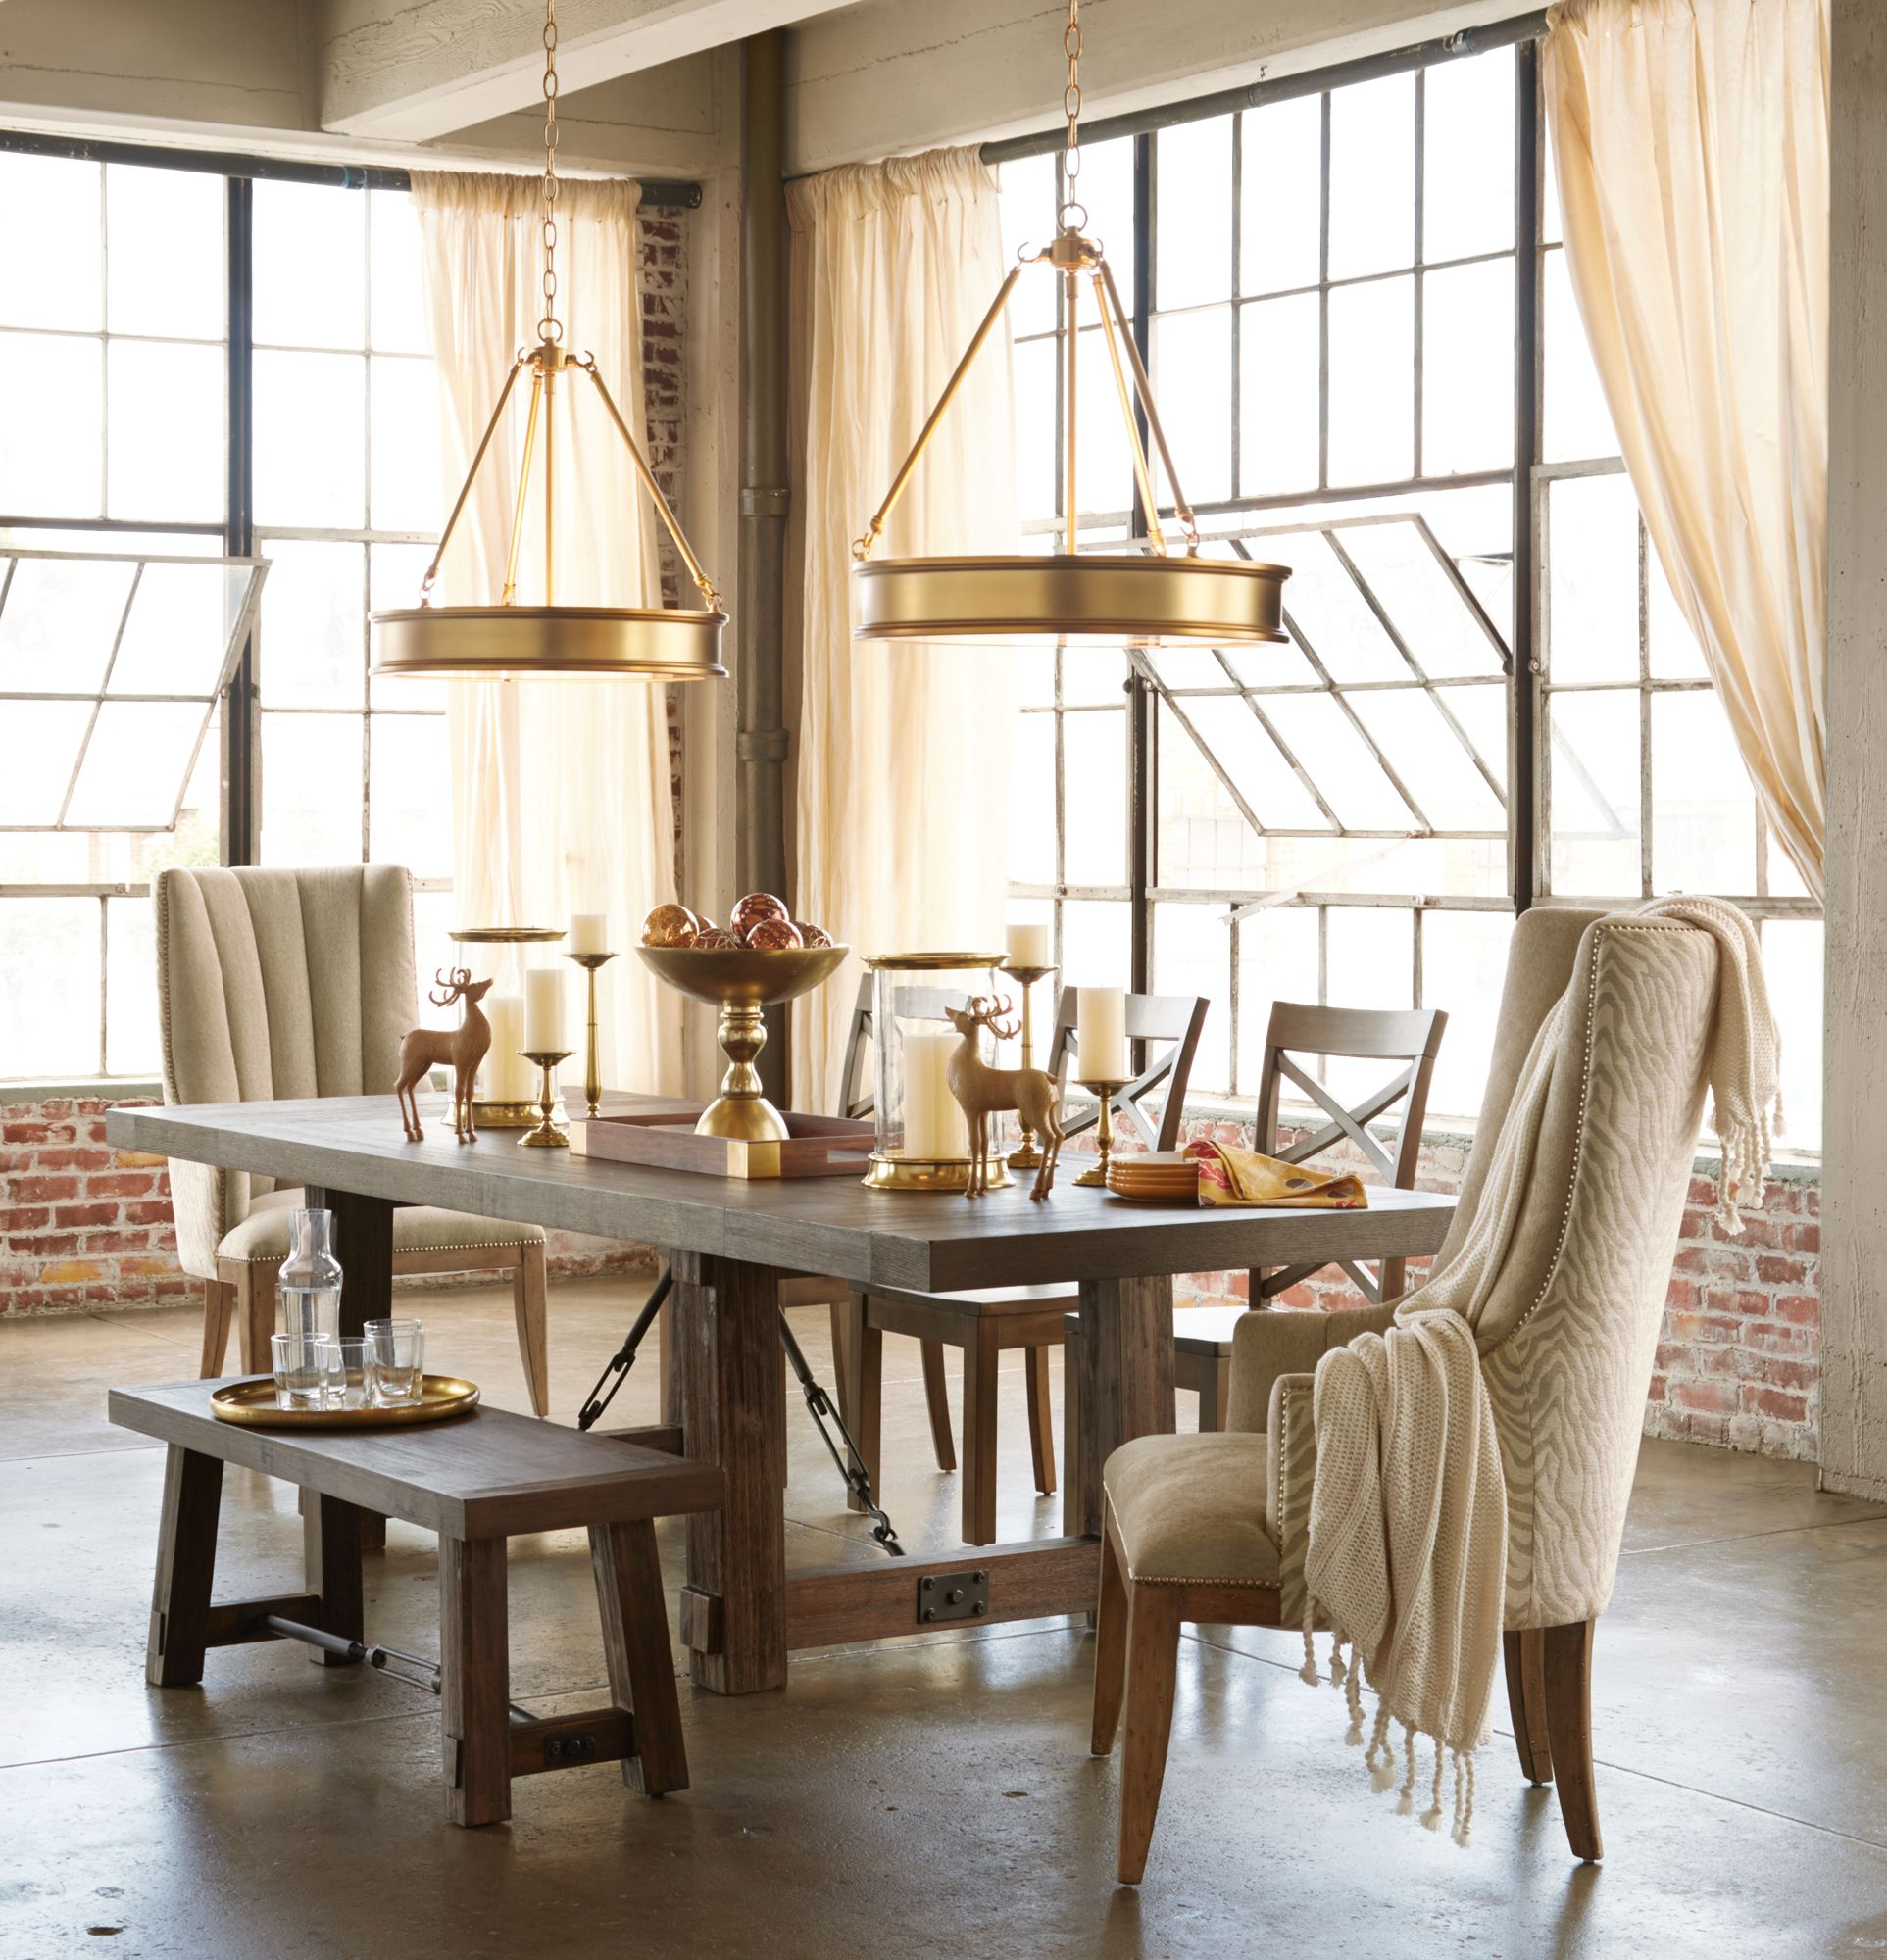 A Duo Of Pendant Lighting Is Twice As Nice In This Loft Dining Room.